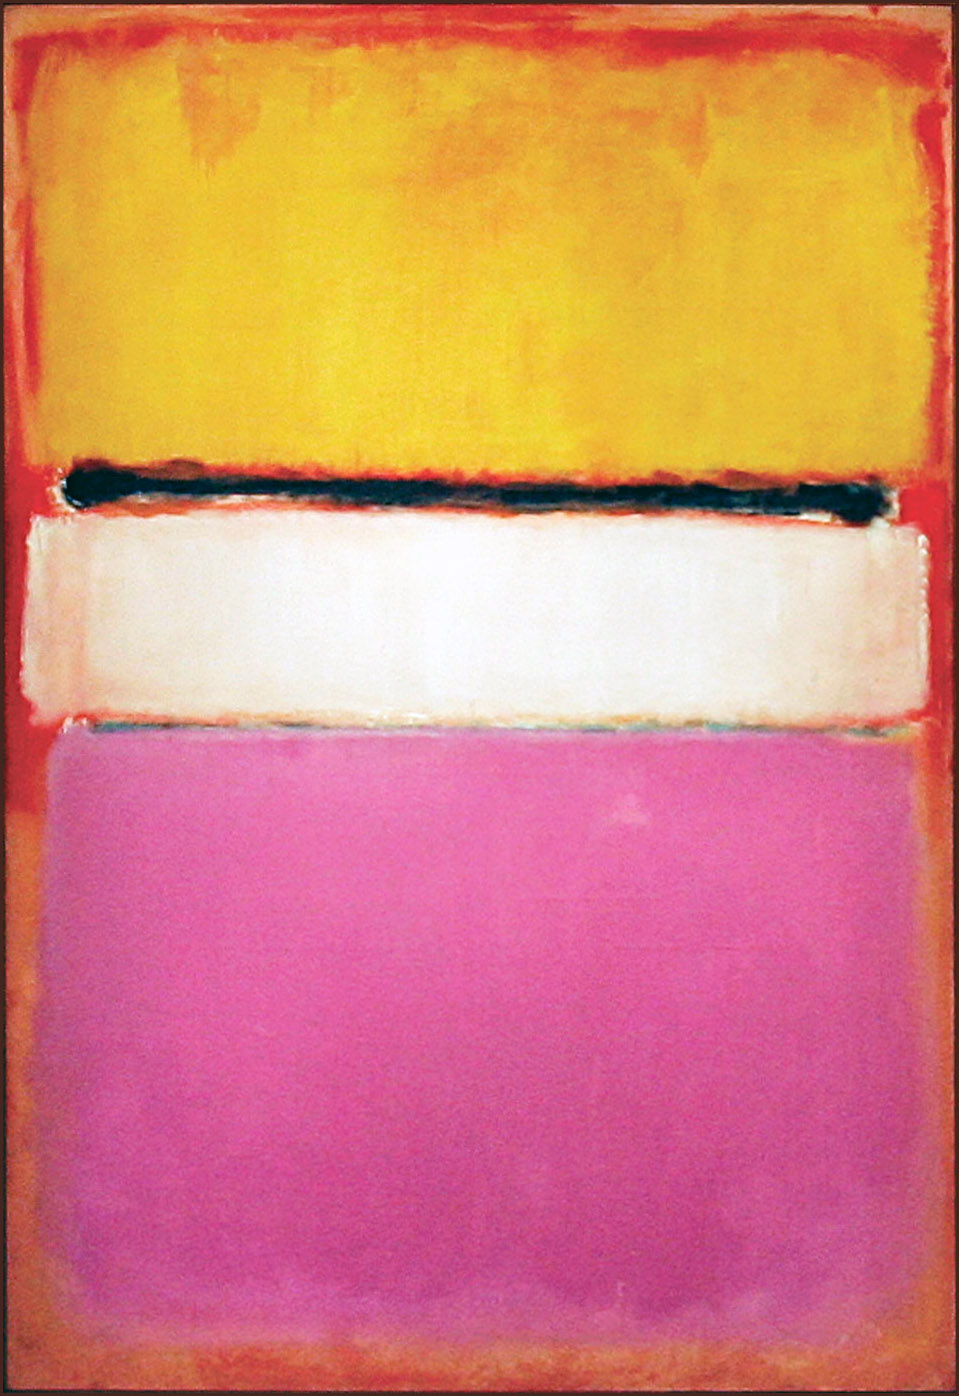 Mark Rothko, Yellow, Pink and Lavender on Rose, 1950, źródło: chriesties